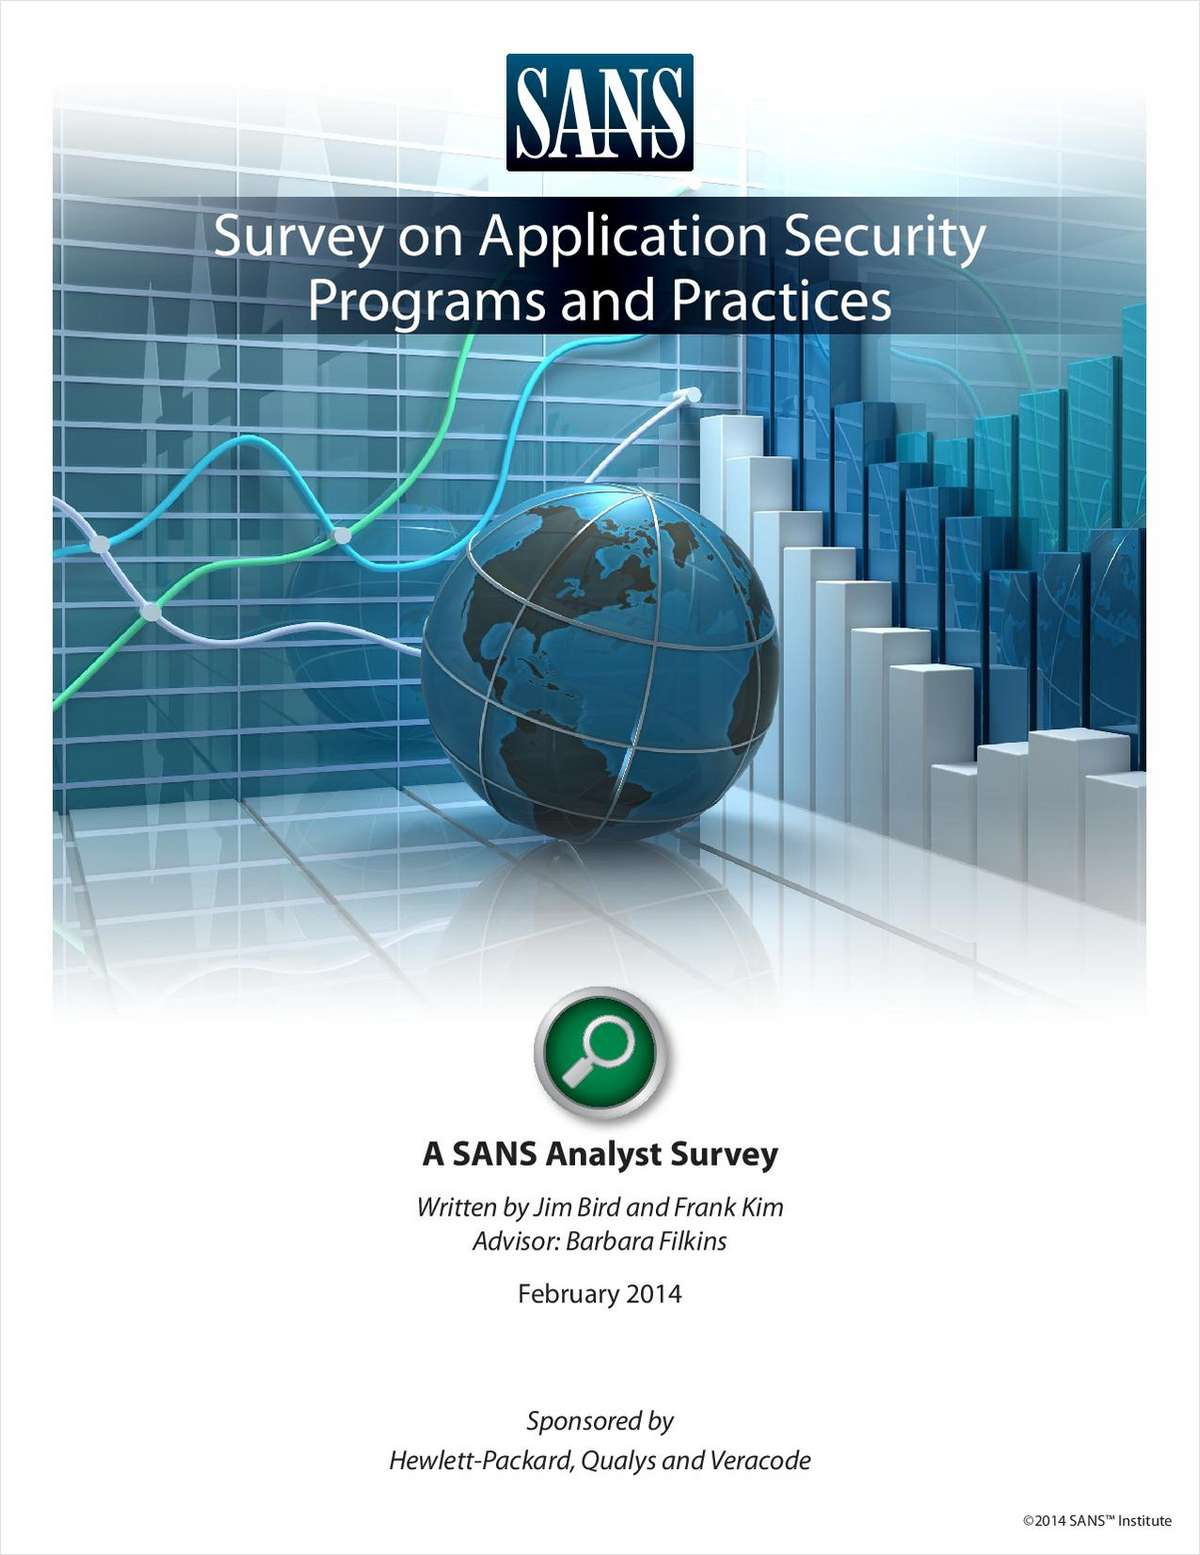 SANS Survey on Application Security Programs and Practices